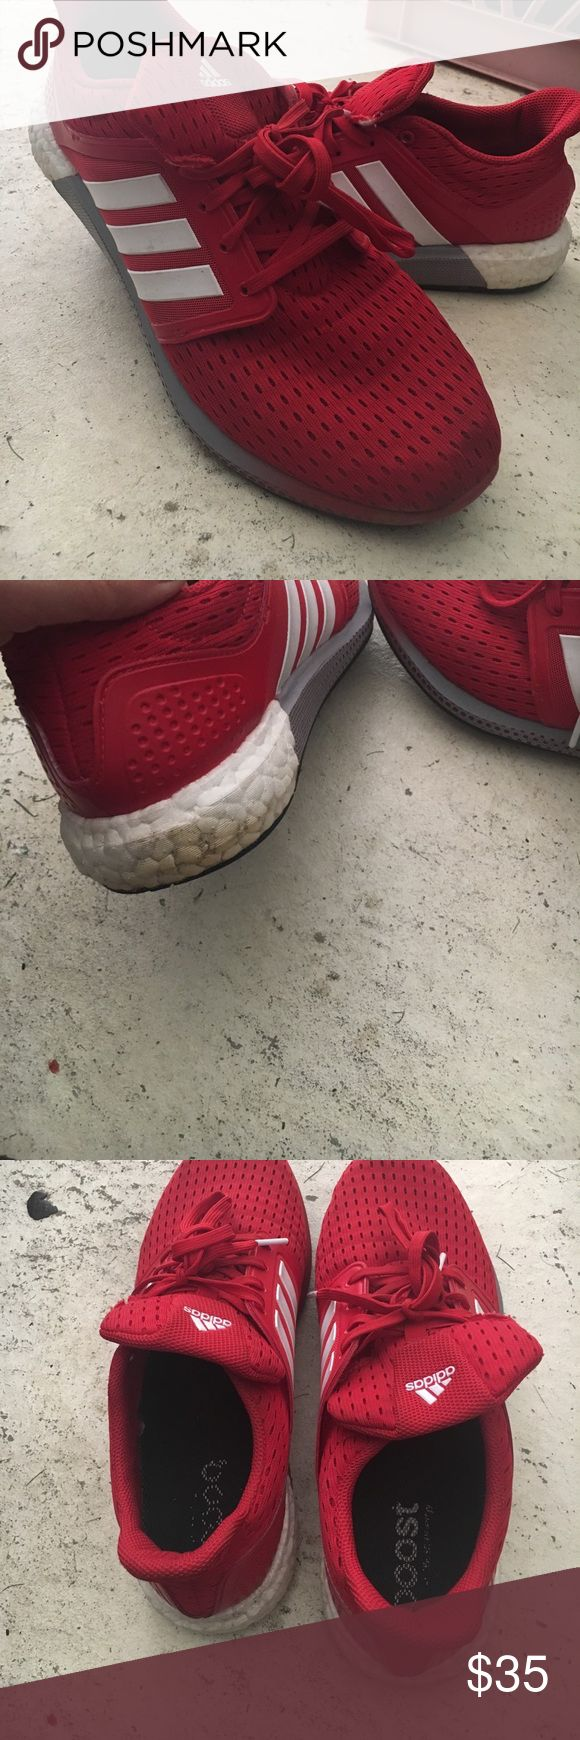 Adidas Boost shoes Adidas cosmic boost shoes. excellent condition. just worn to run errands adidas Shoes Athletic Shoes